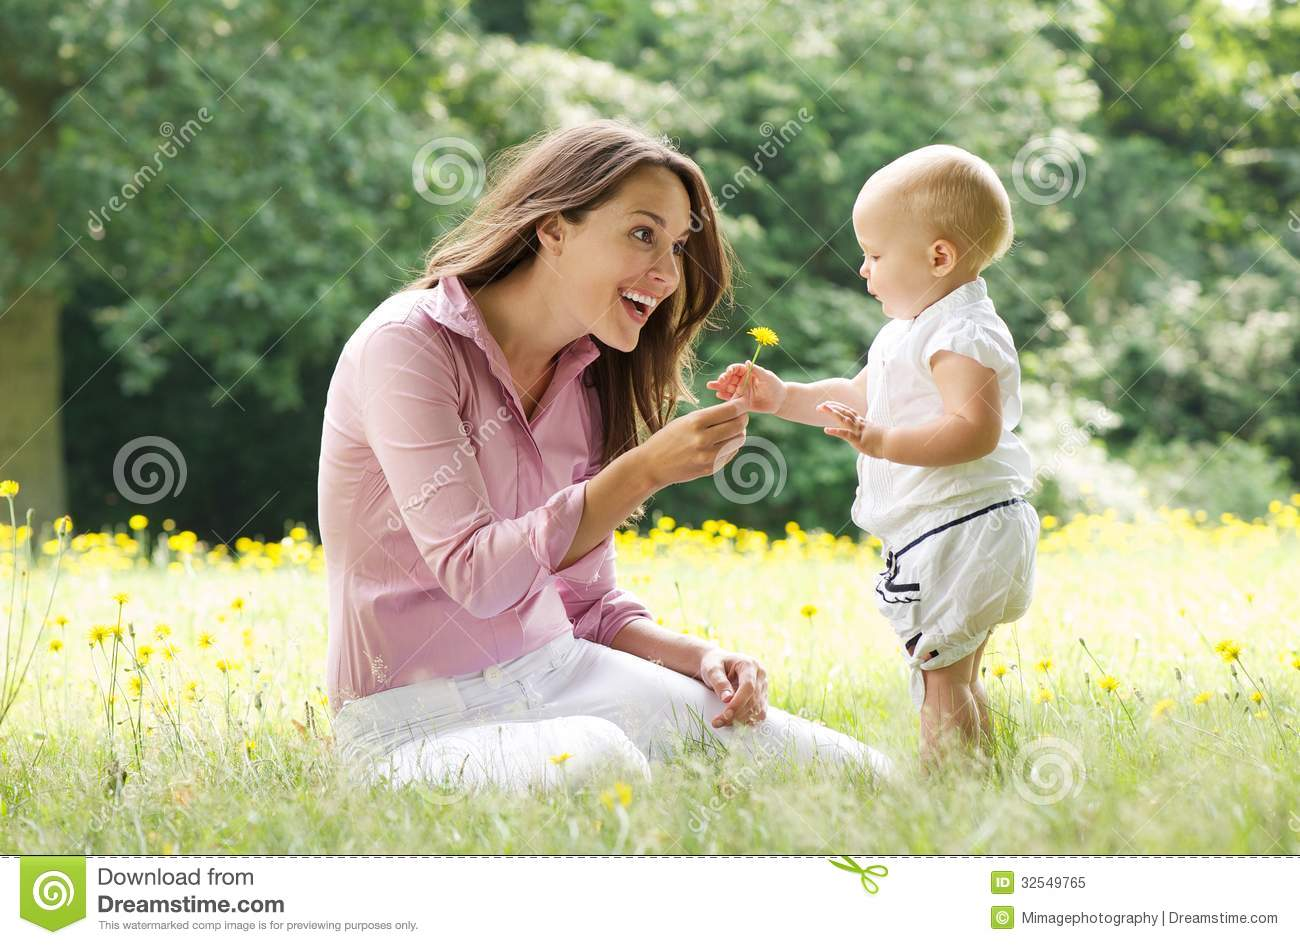 Fall Out Boy Flower Wallpaper Beautiful Mother With Baby Playing In The Park Stock Image